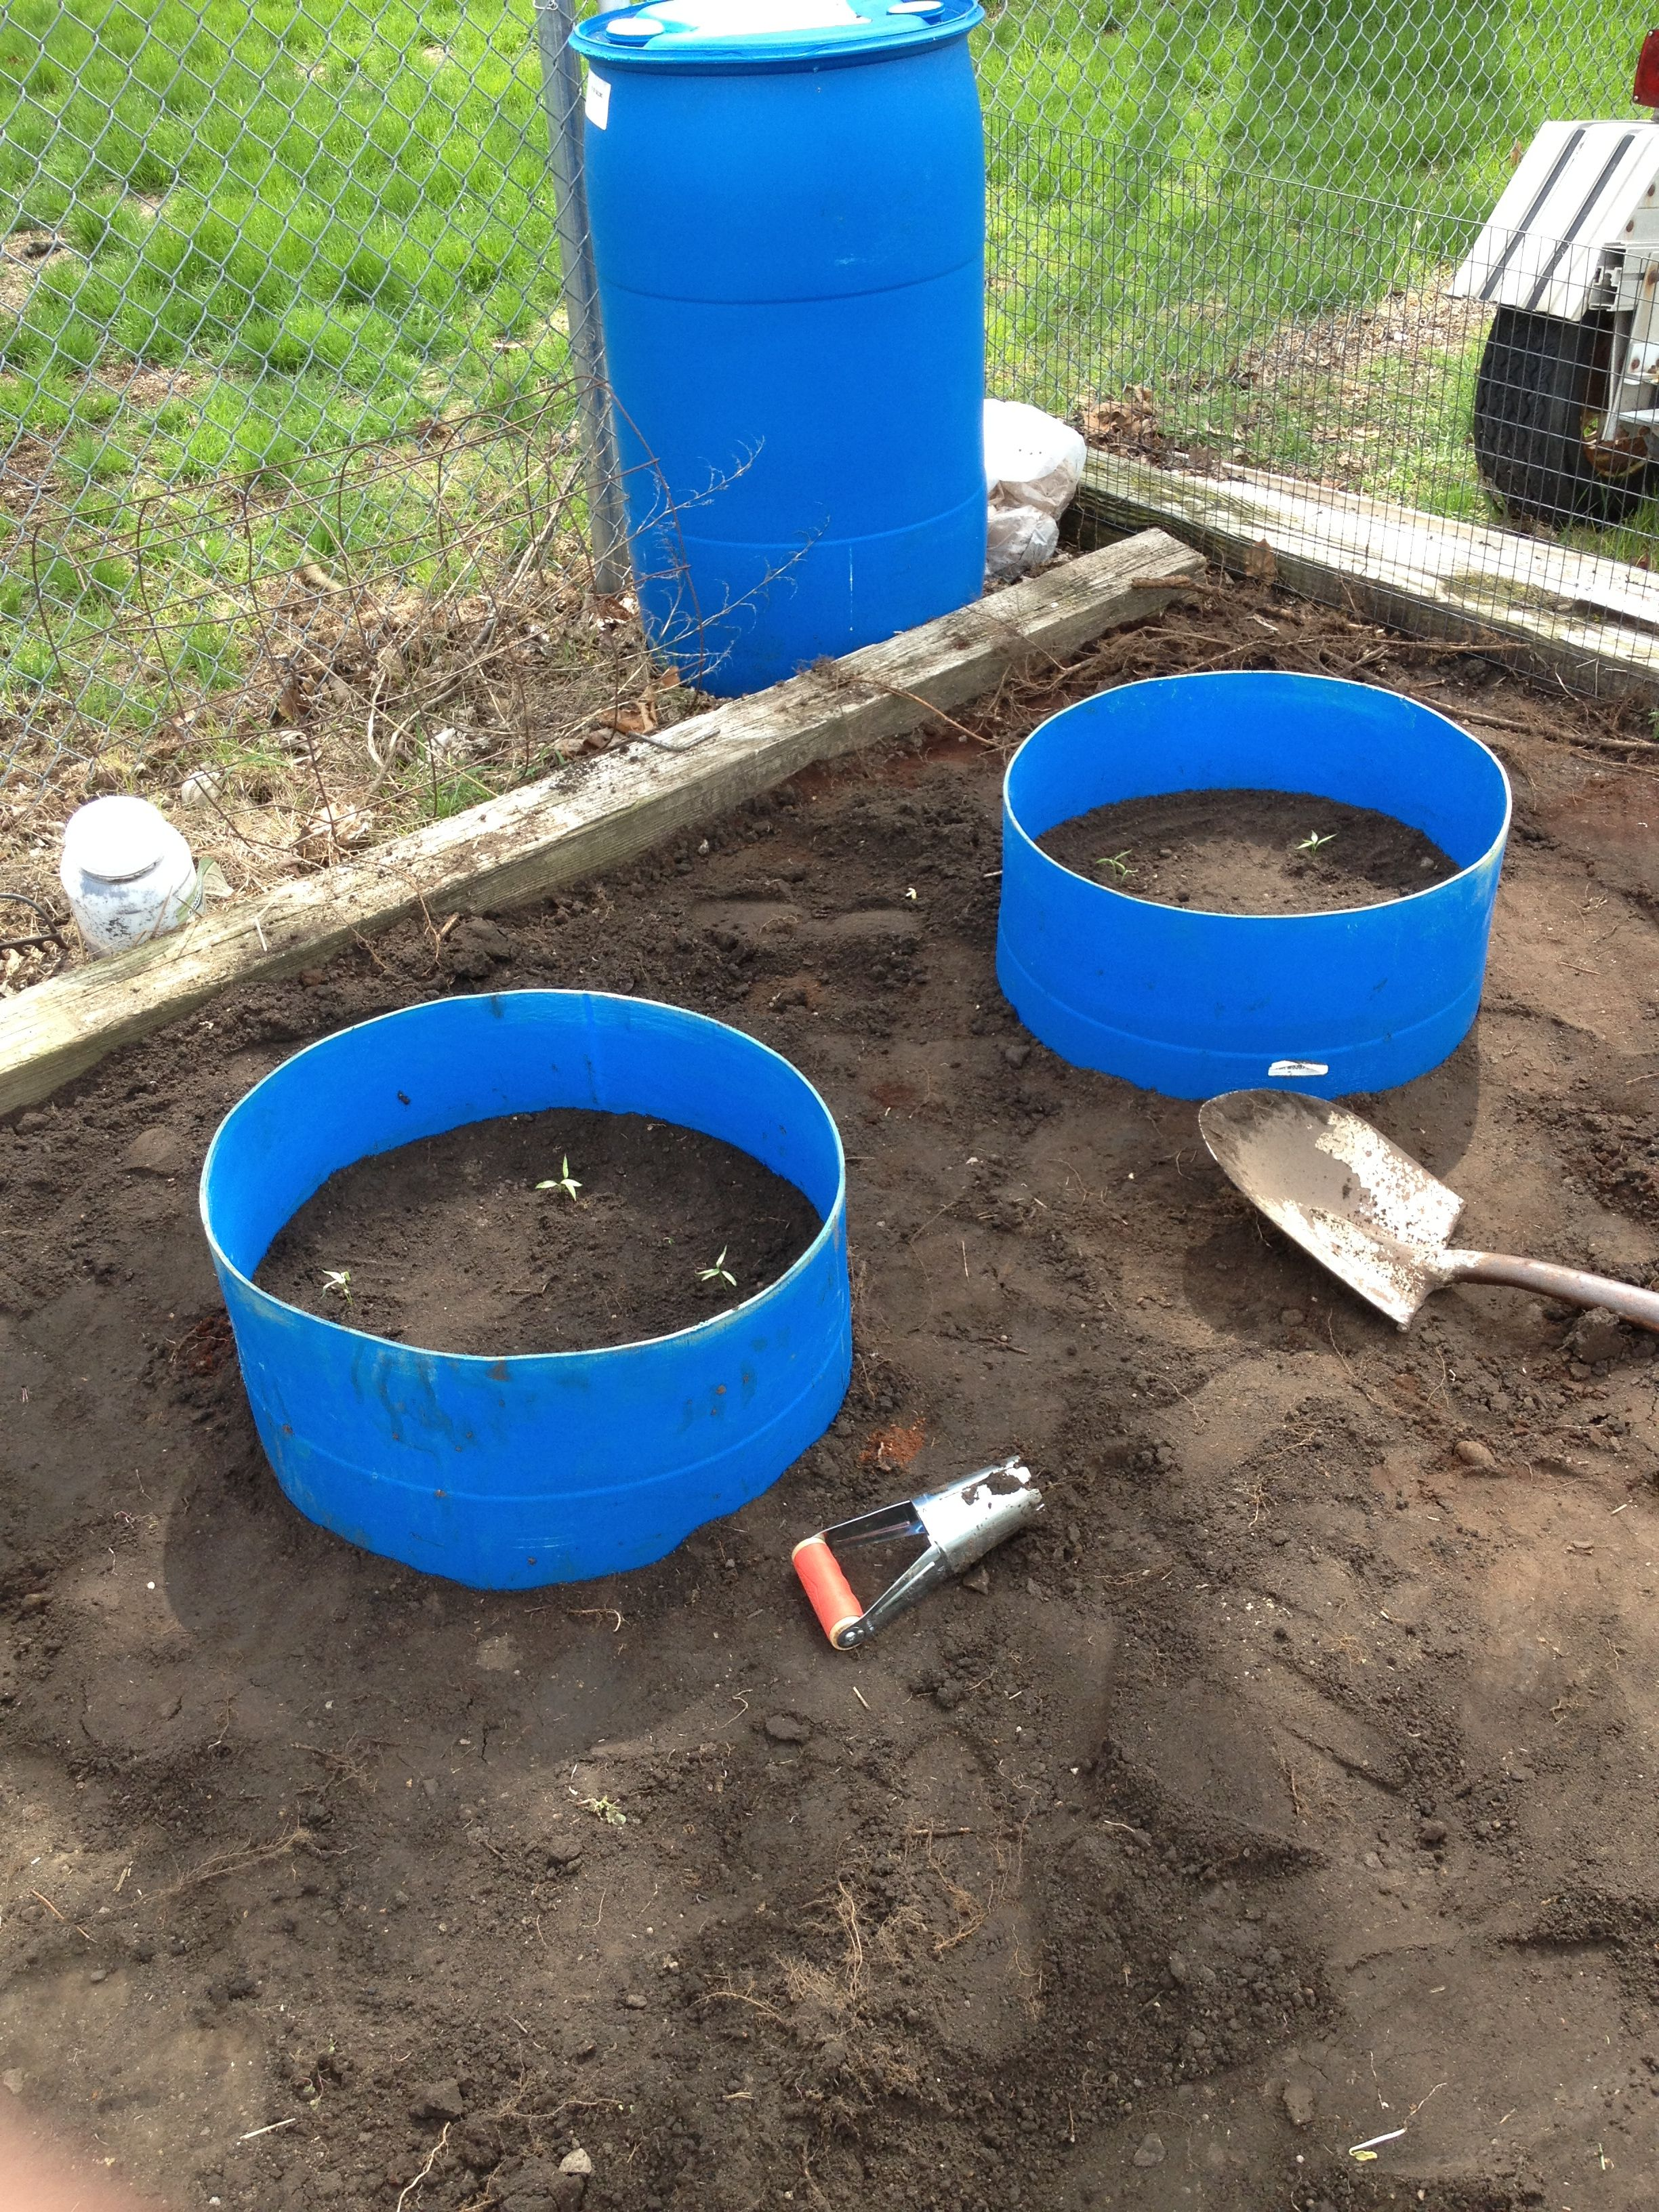 55 Gallon Barrels Cut In Half To Make Little Raised Garden Beds...really